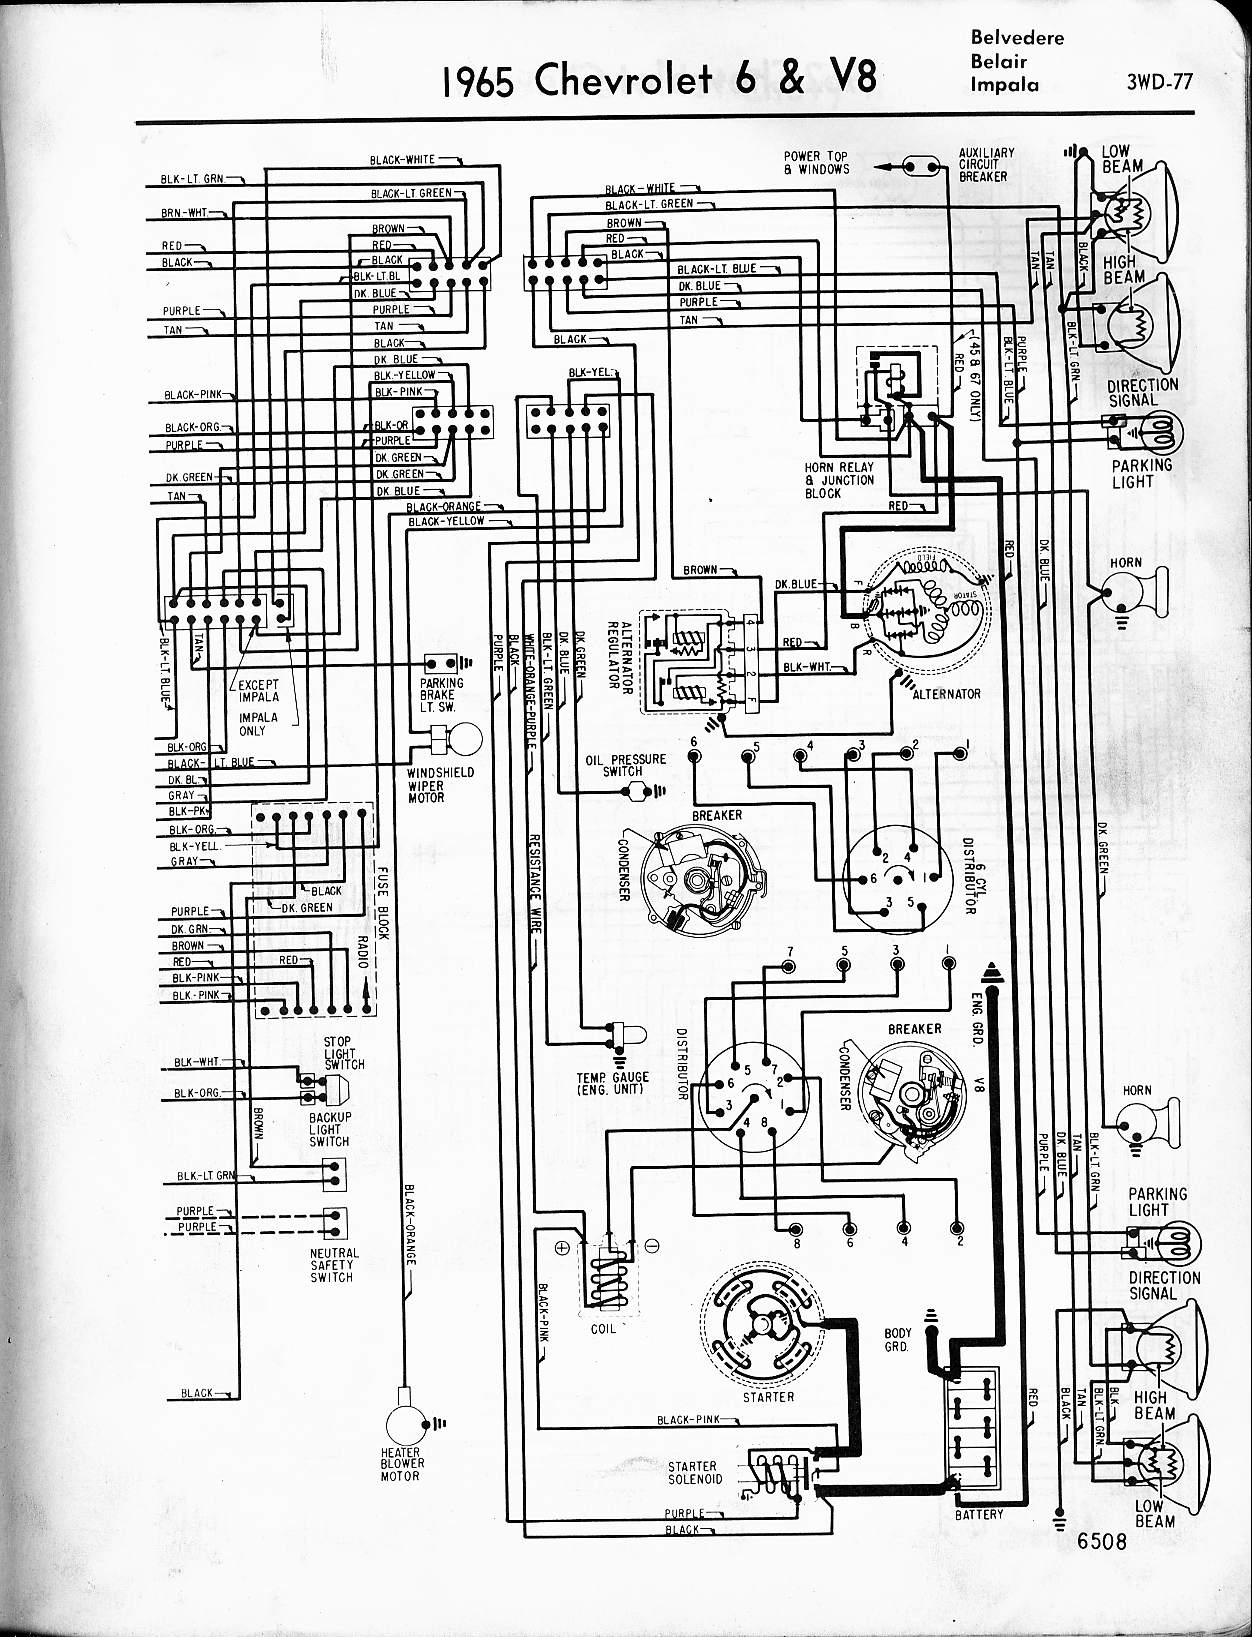 MWireChev65_3WD 077 chevy diagrams 69 chevelle wiring diagram at crackthecode.co